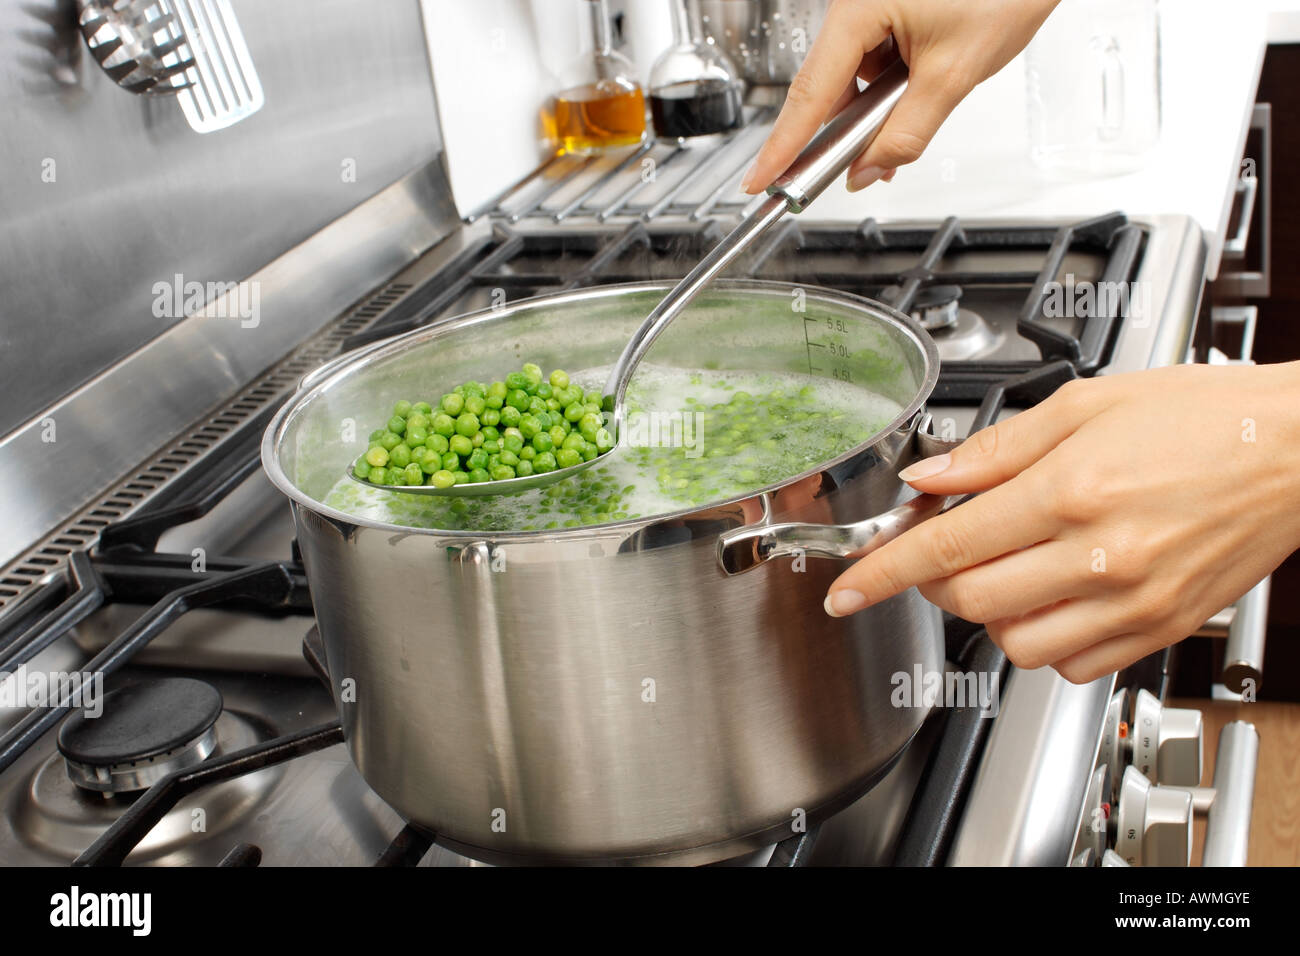 WOMAN IN KITCHEN COOKING PEAS - Stock Image